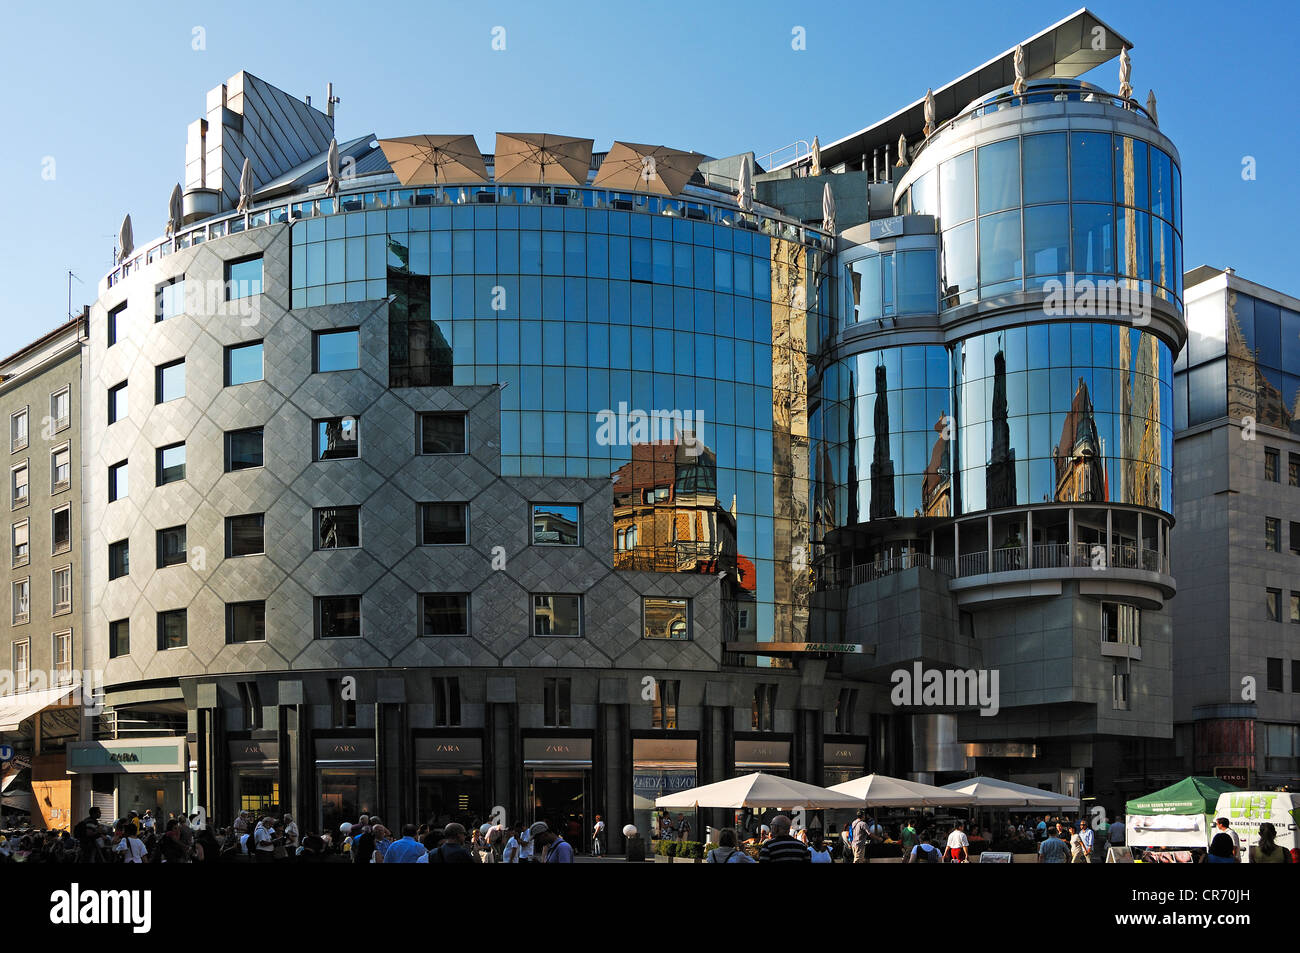 haas house built by architect hans hollein in 1990 modern architecture at stephansplatz square vienna austria europe - Modern Architecture Vienna